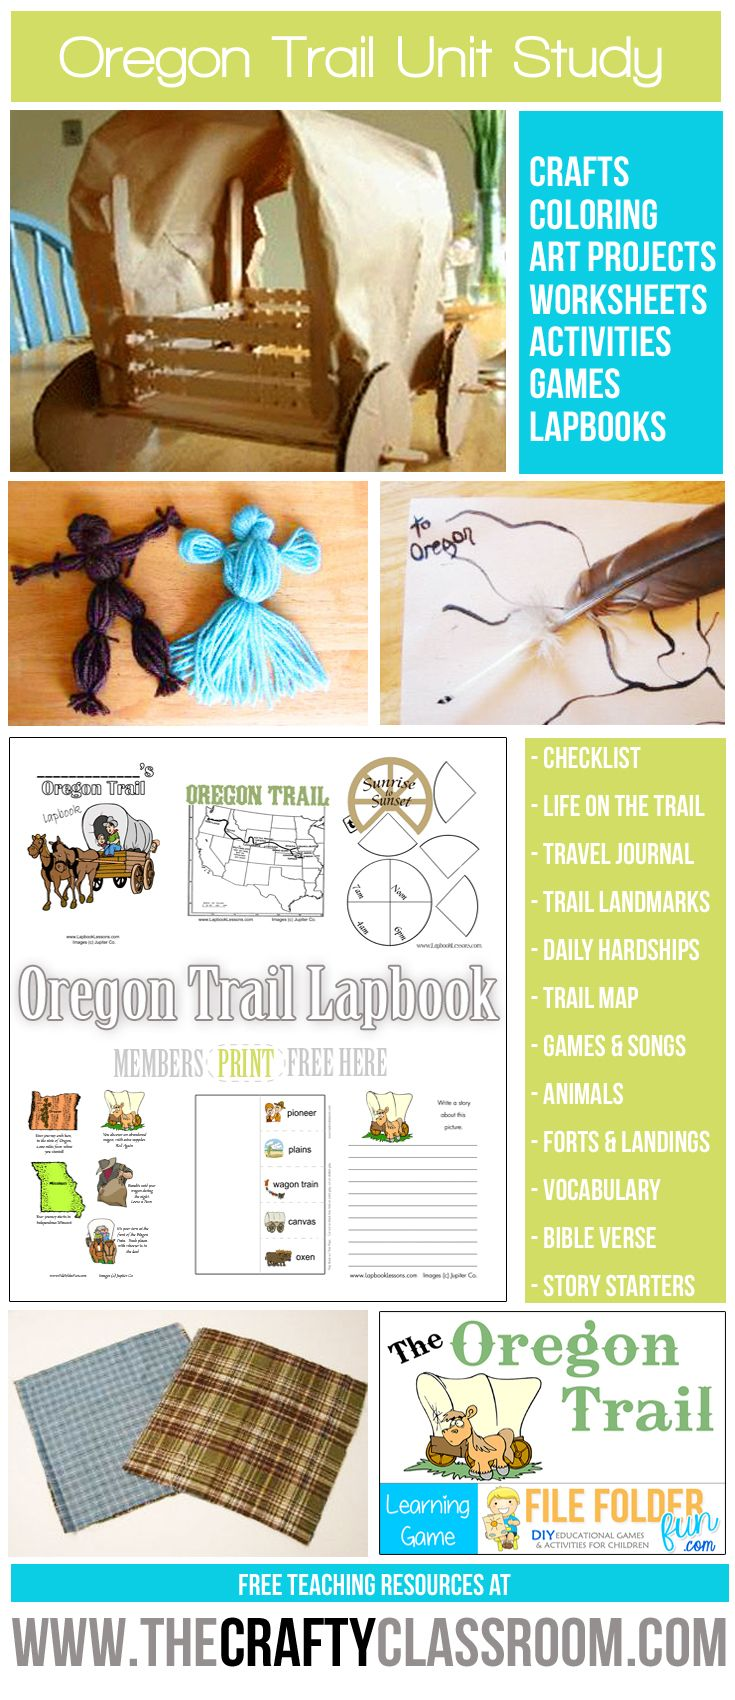 Free Oregon Trail Unit Study Resources Find Crafts, Activities, Games,  Lapbooking Elements